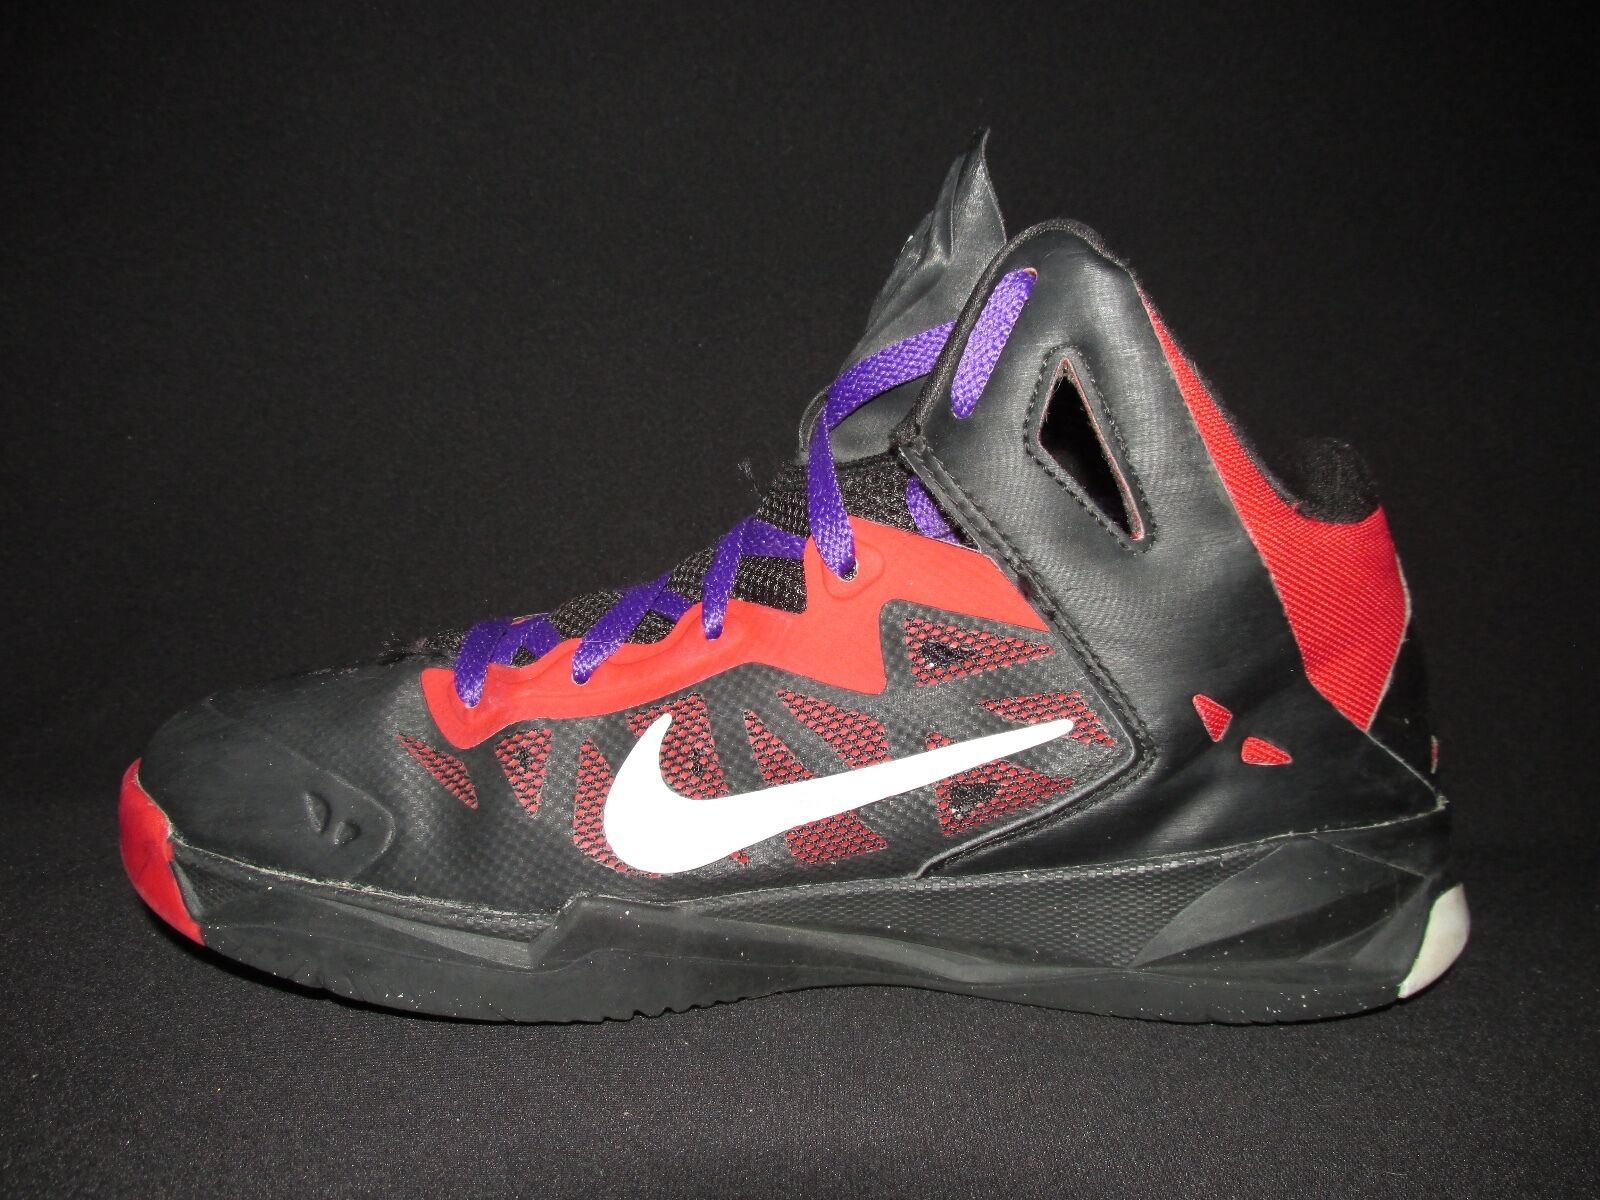 The latest discount shoes for men and women Nike Zoom Hyper Chaos Black Red 536841-001 Basketball Shoes  Men's US 7.5M